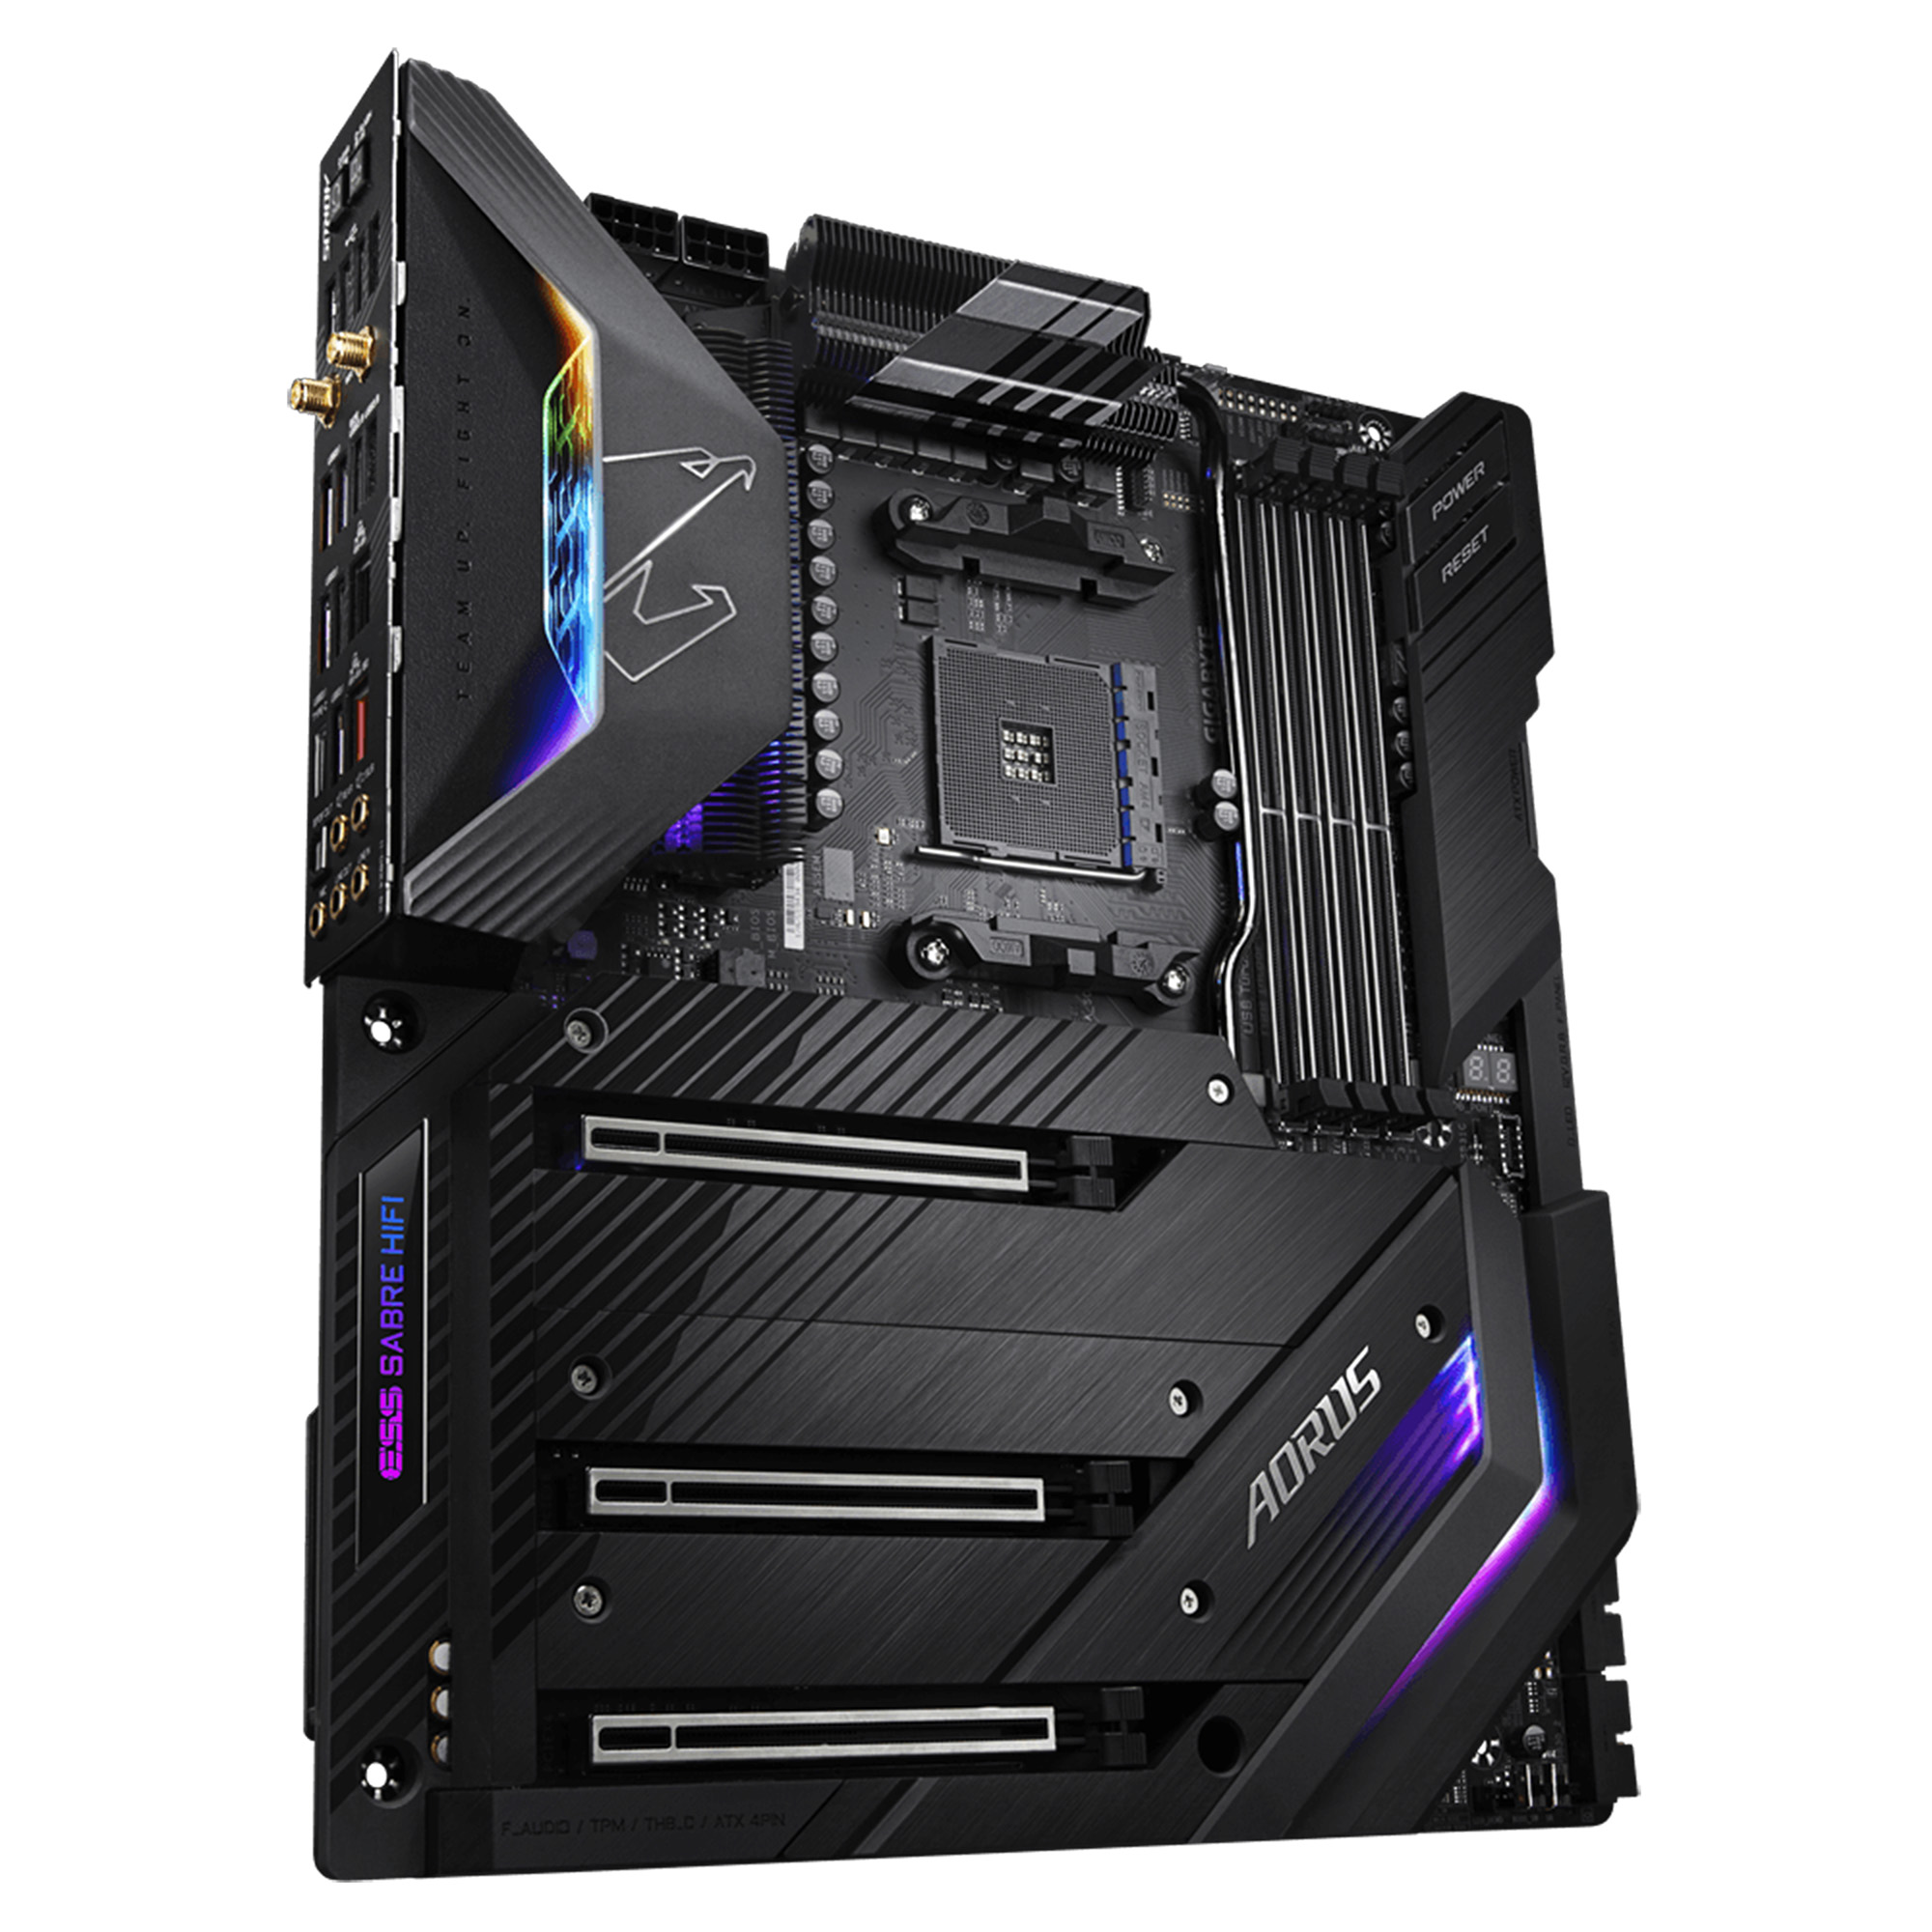 High performance and stable Gaming motherboard